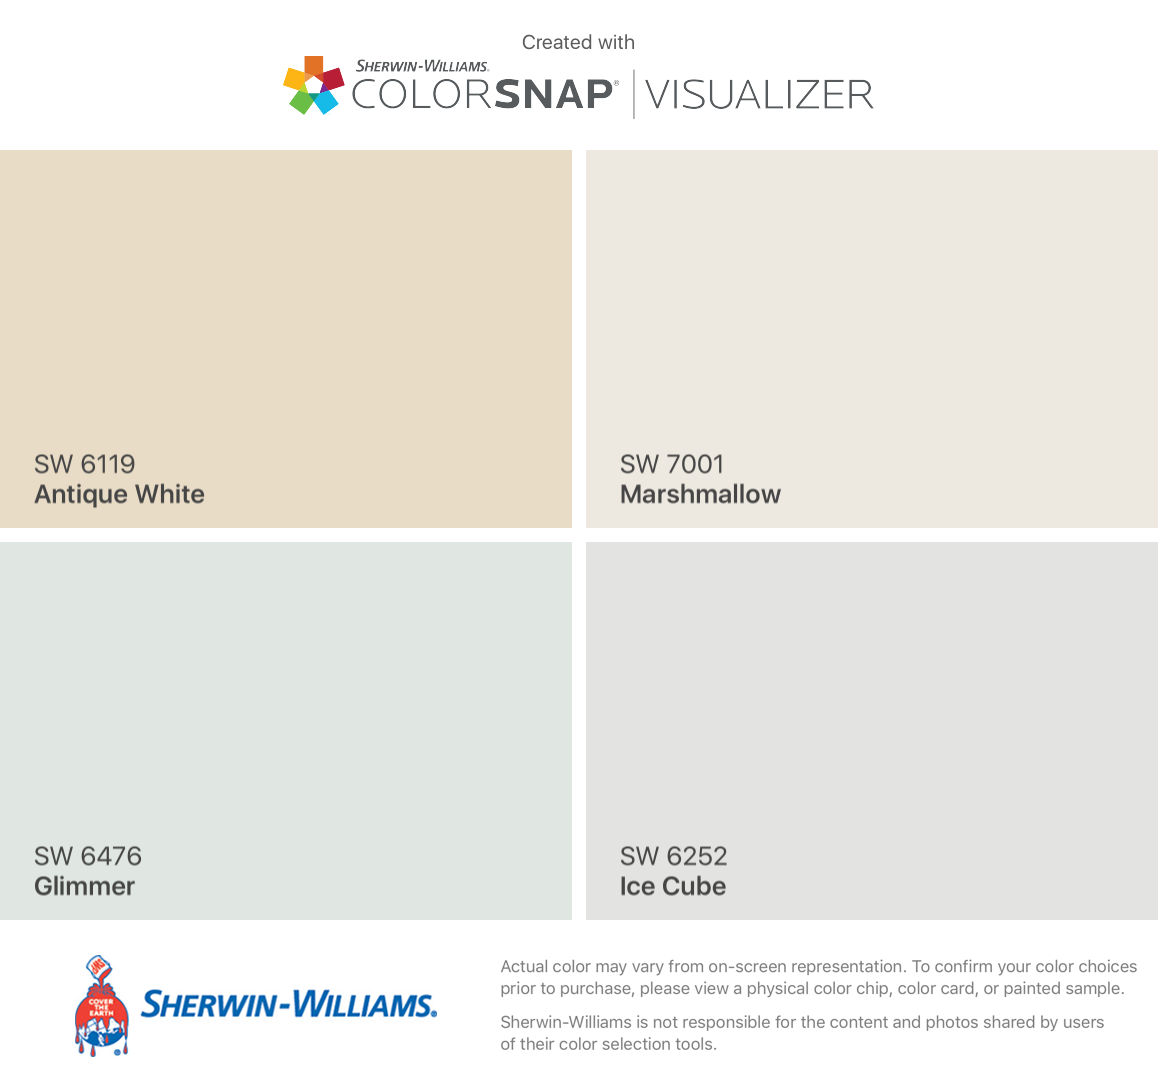 I found these colors with colorsnap visualizer for iphone by sherwin williams antique white sw 6119 glimmer sw 6476 marshmallow sw 7001